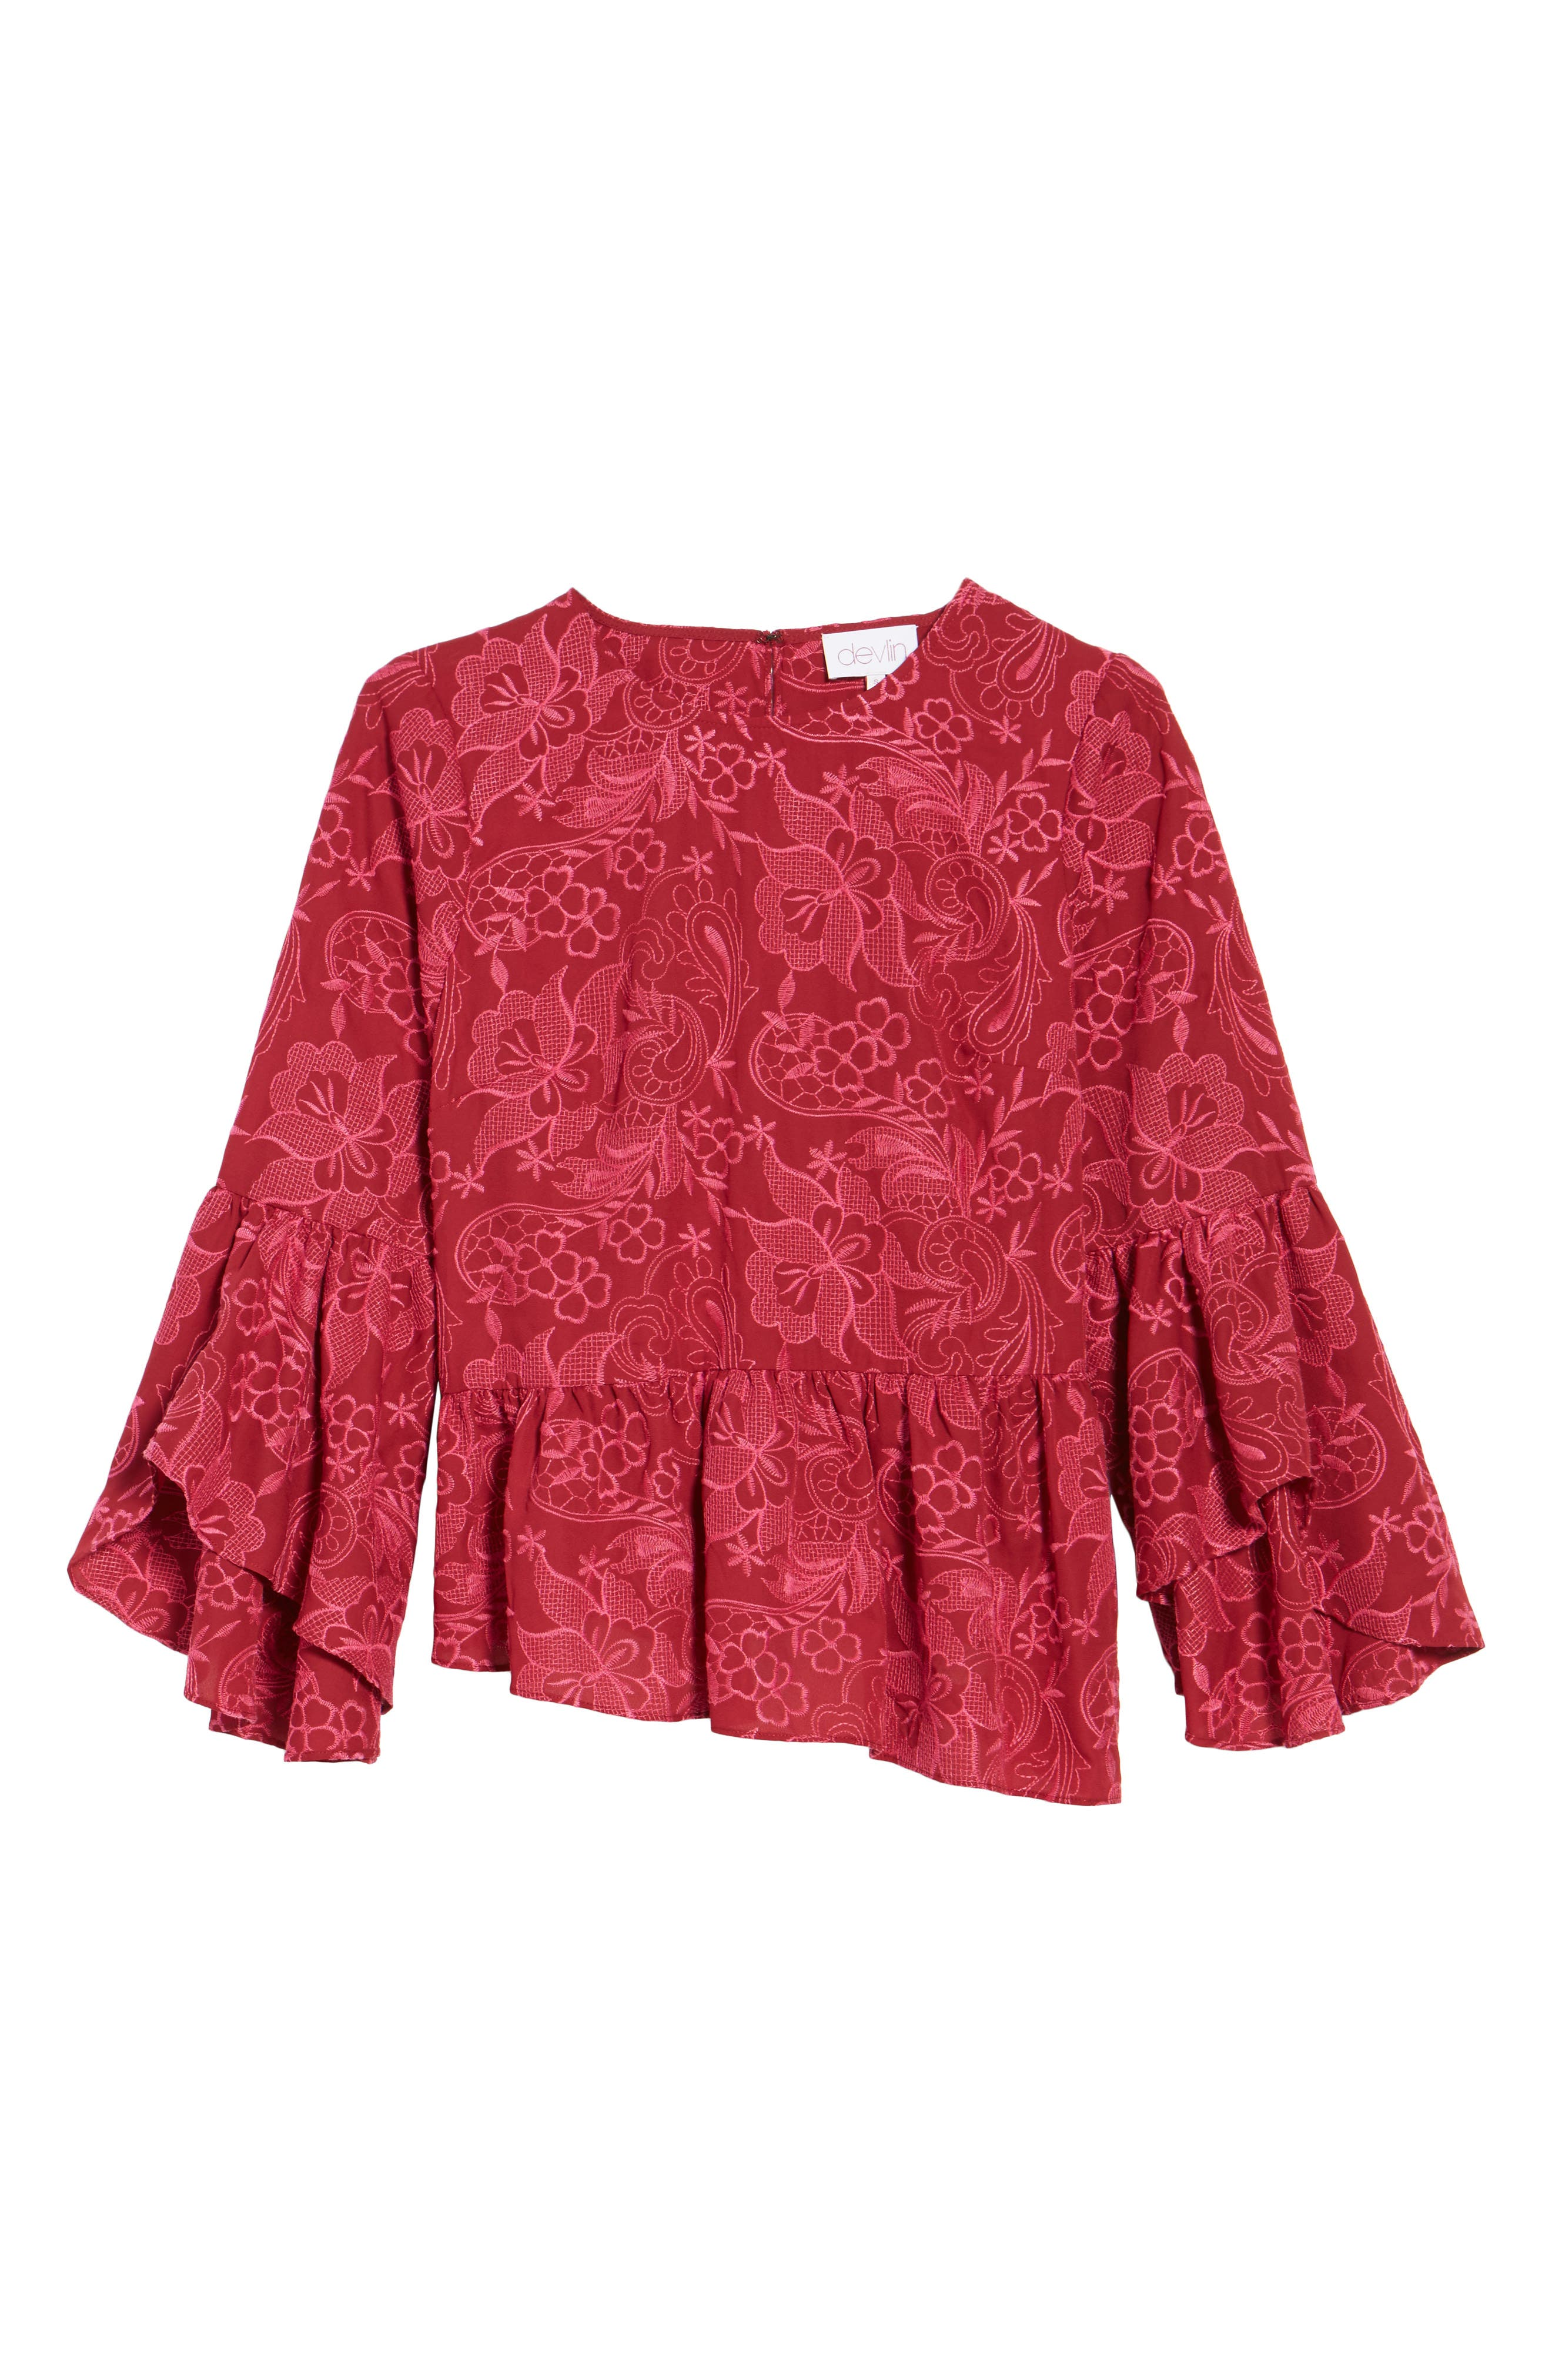 Helena Lace Bell Sleeve Top,                             Alternate thumbnail 6, color,                             Shiraz